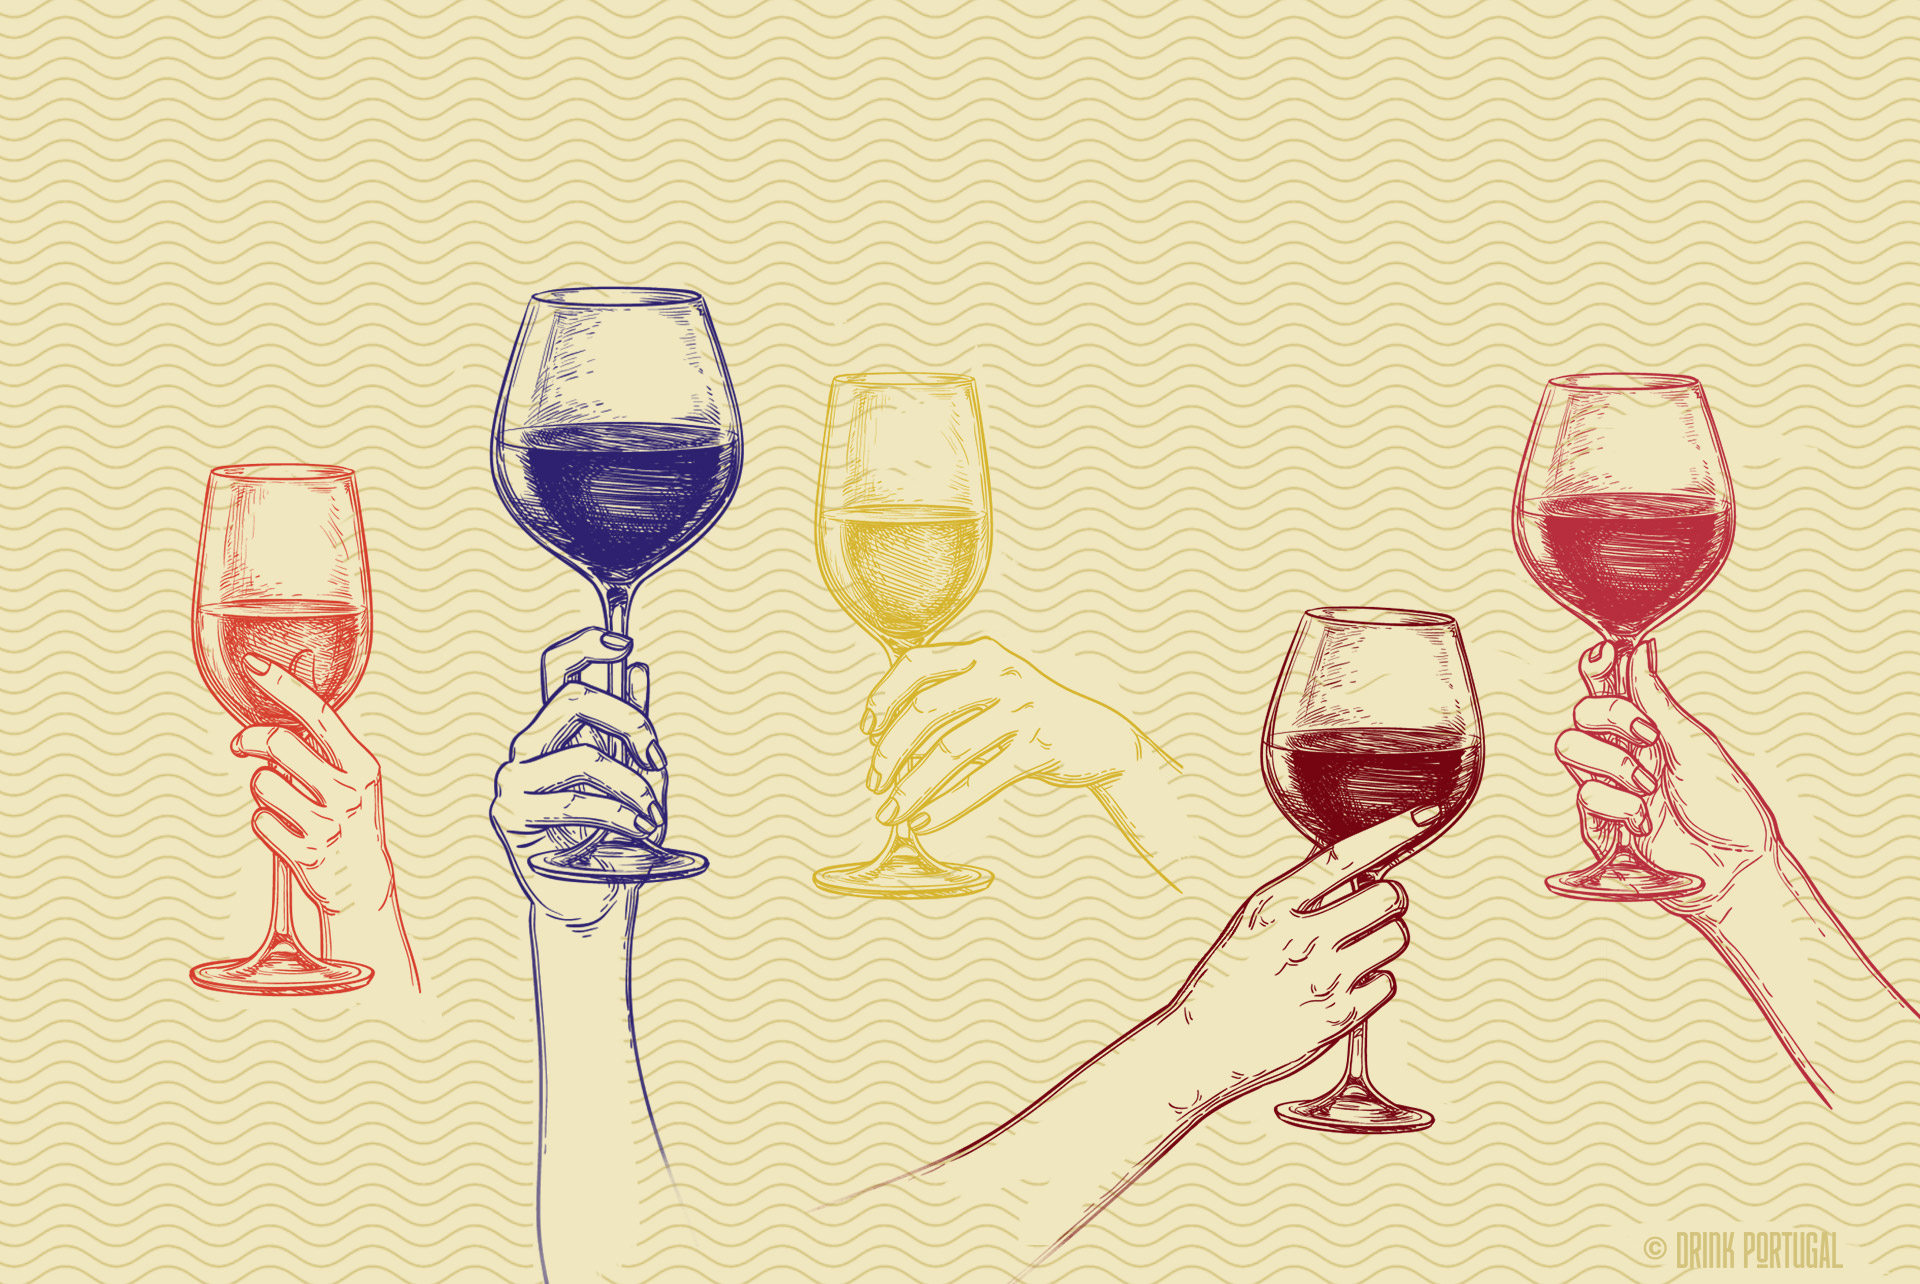 Drink Portugal Blog. Types of Wine, Portuguese Terms